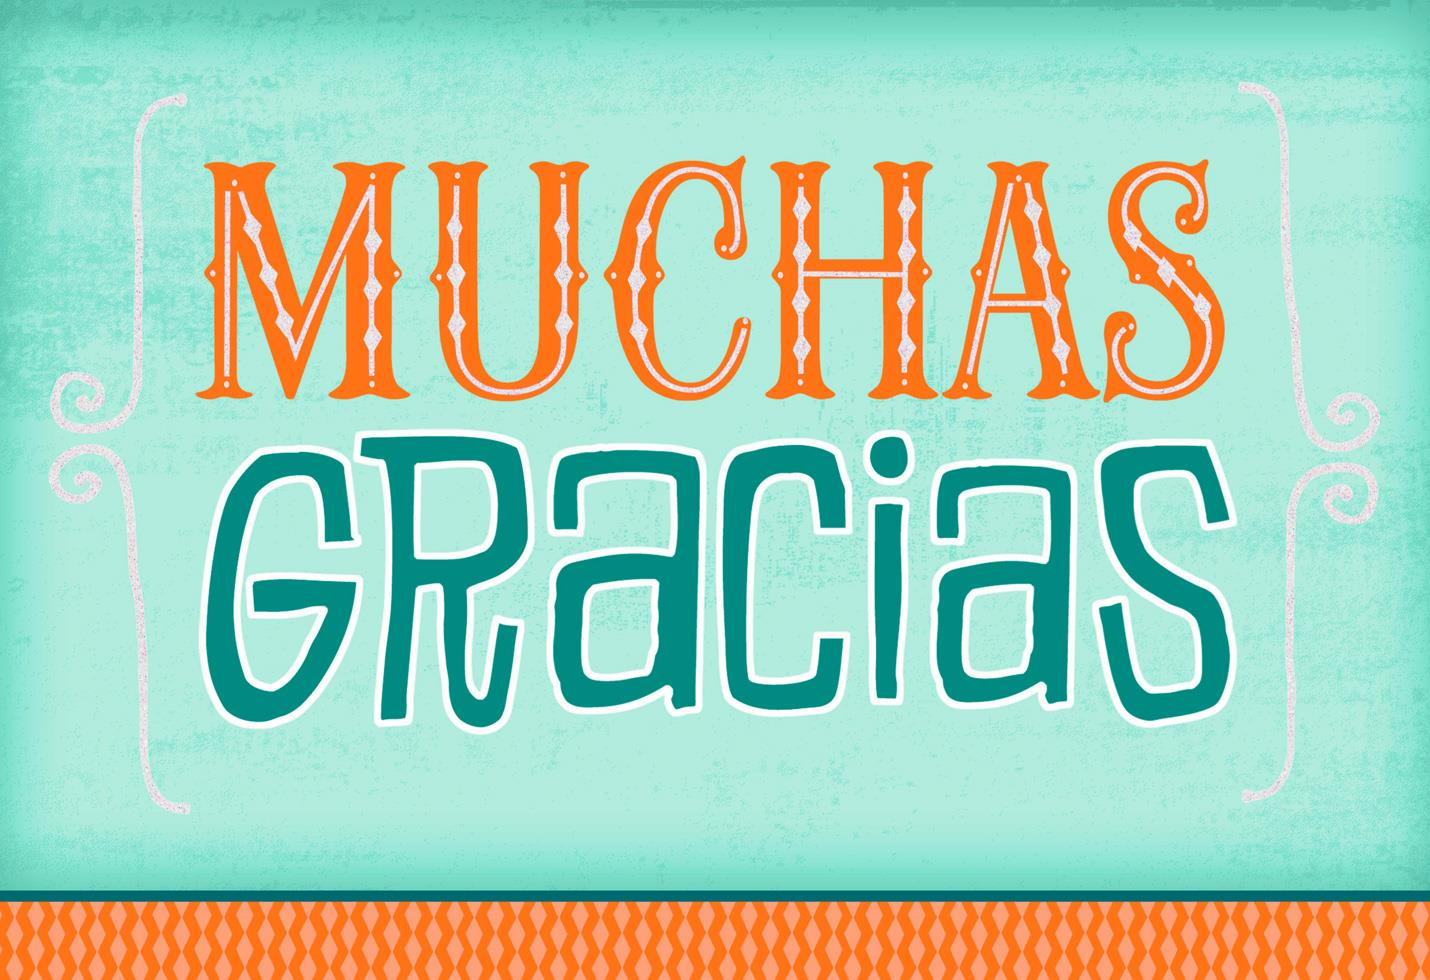 Glomorous Many Thanks Thank You Card Many Thanks Thank You Card Greeting Cards Hallmark Spanish Thank You Thank You Girl Spanish inspiration Spanish For Thank You